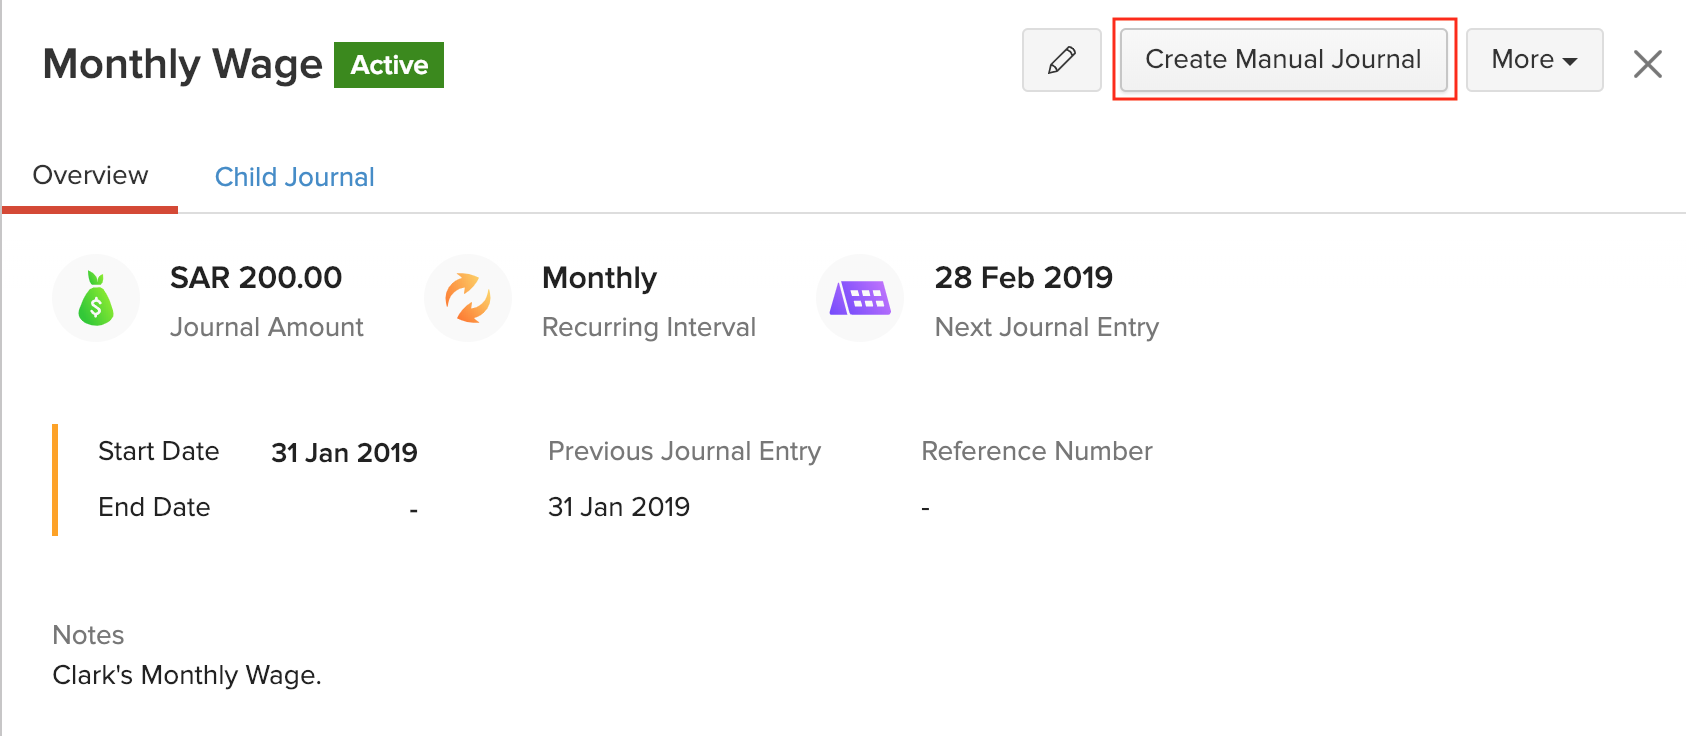 Creating Manual Journal from Recurring Journals